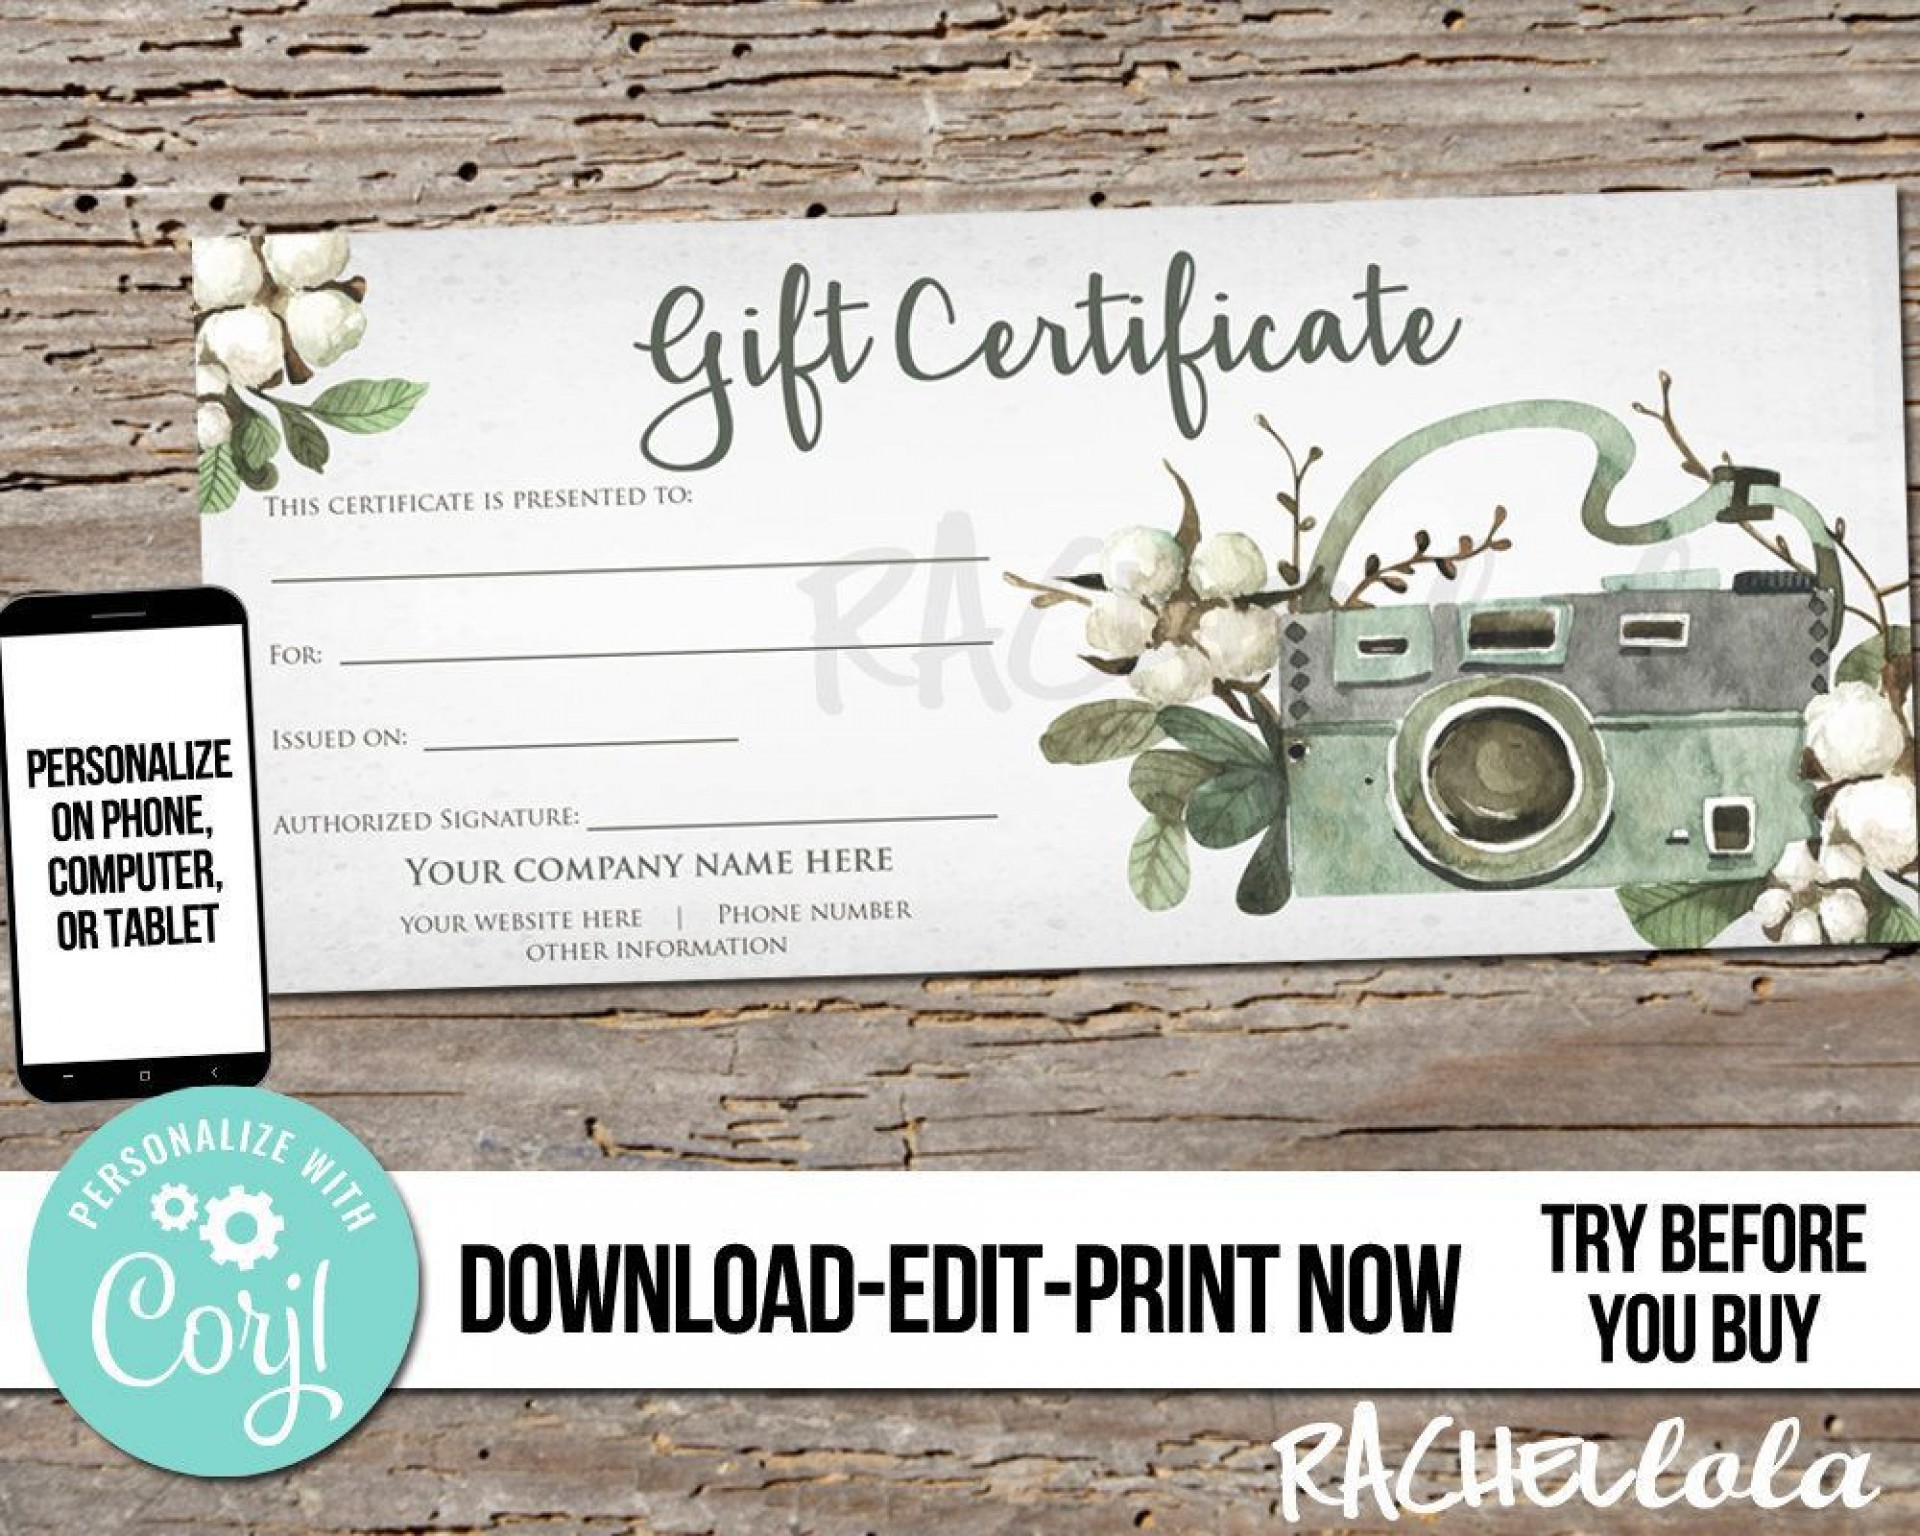 003 Awesome Photography Session Gift Certificate Template Concept  Photo Free1920